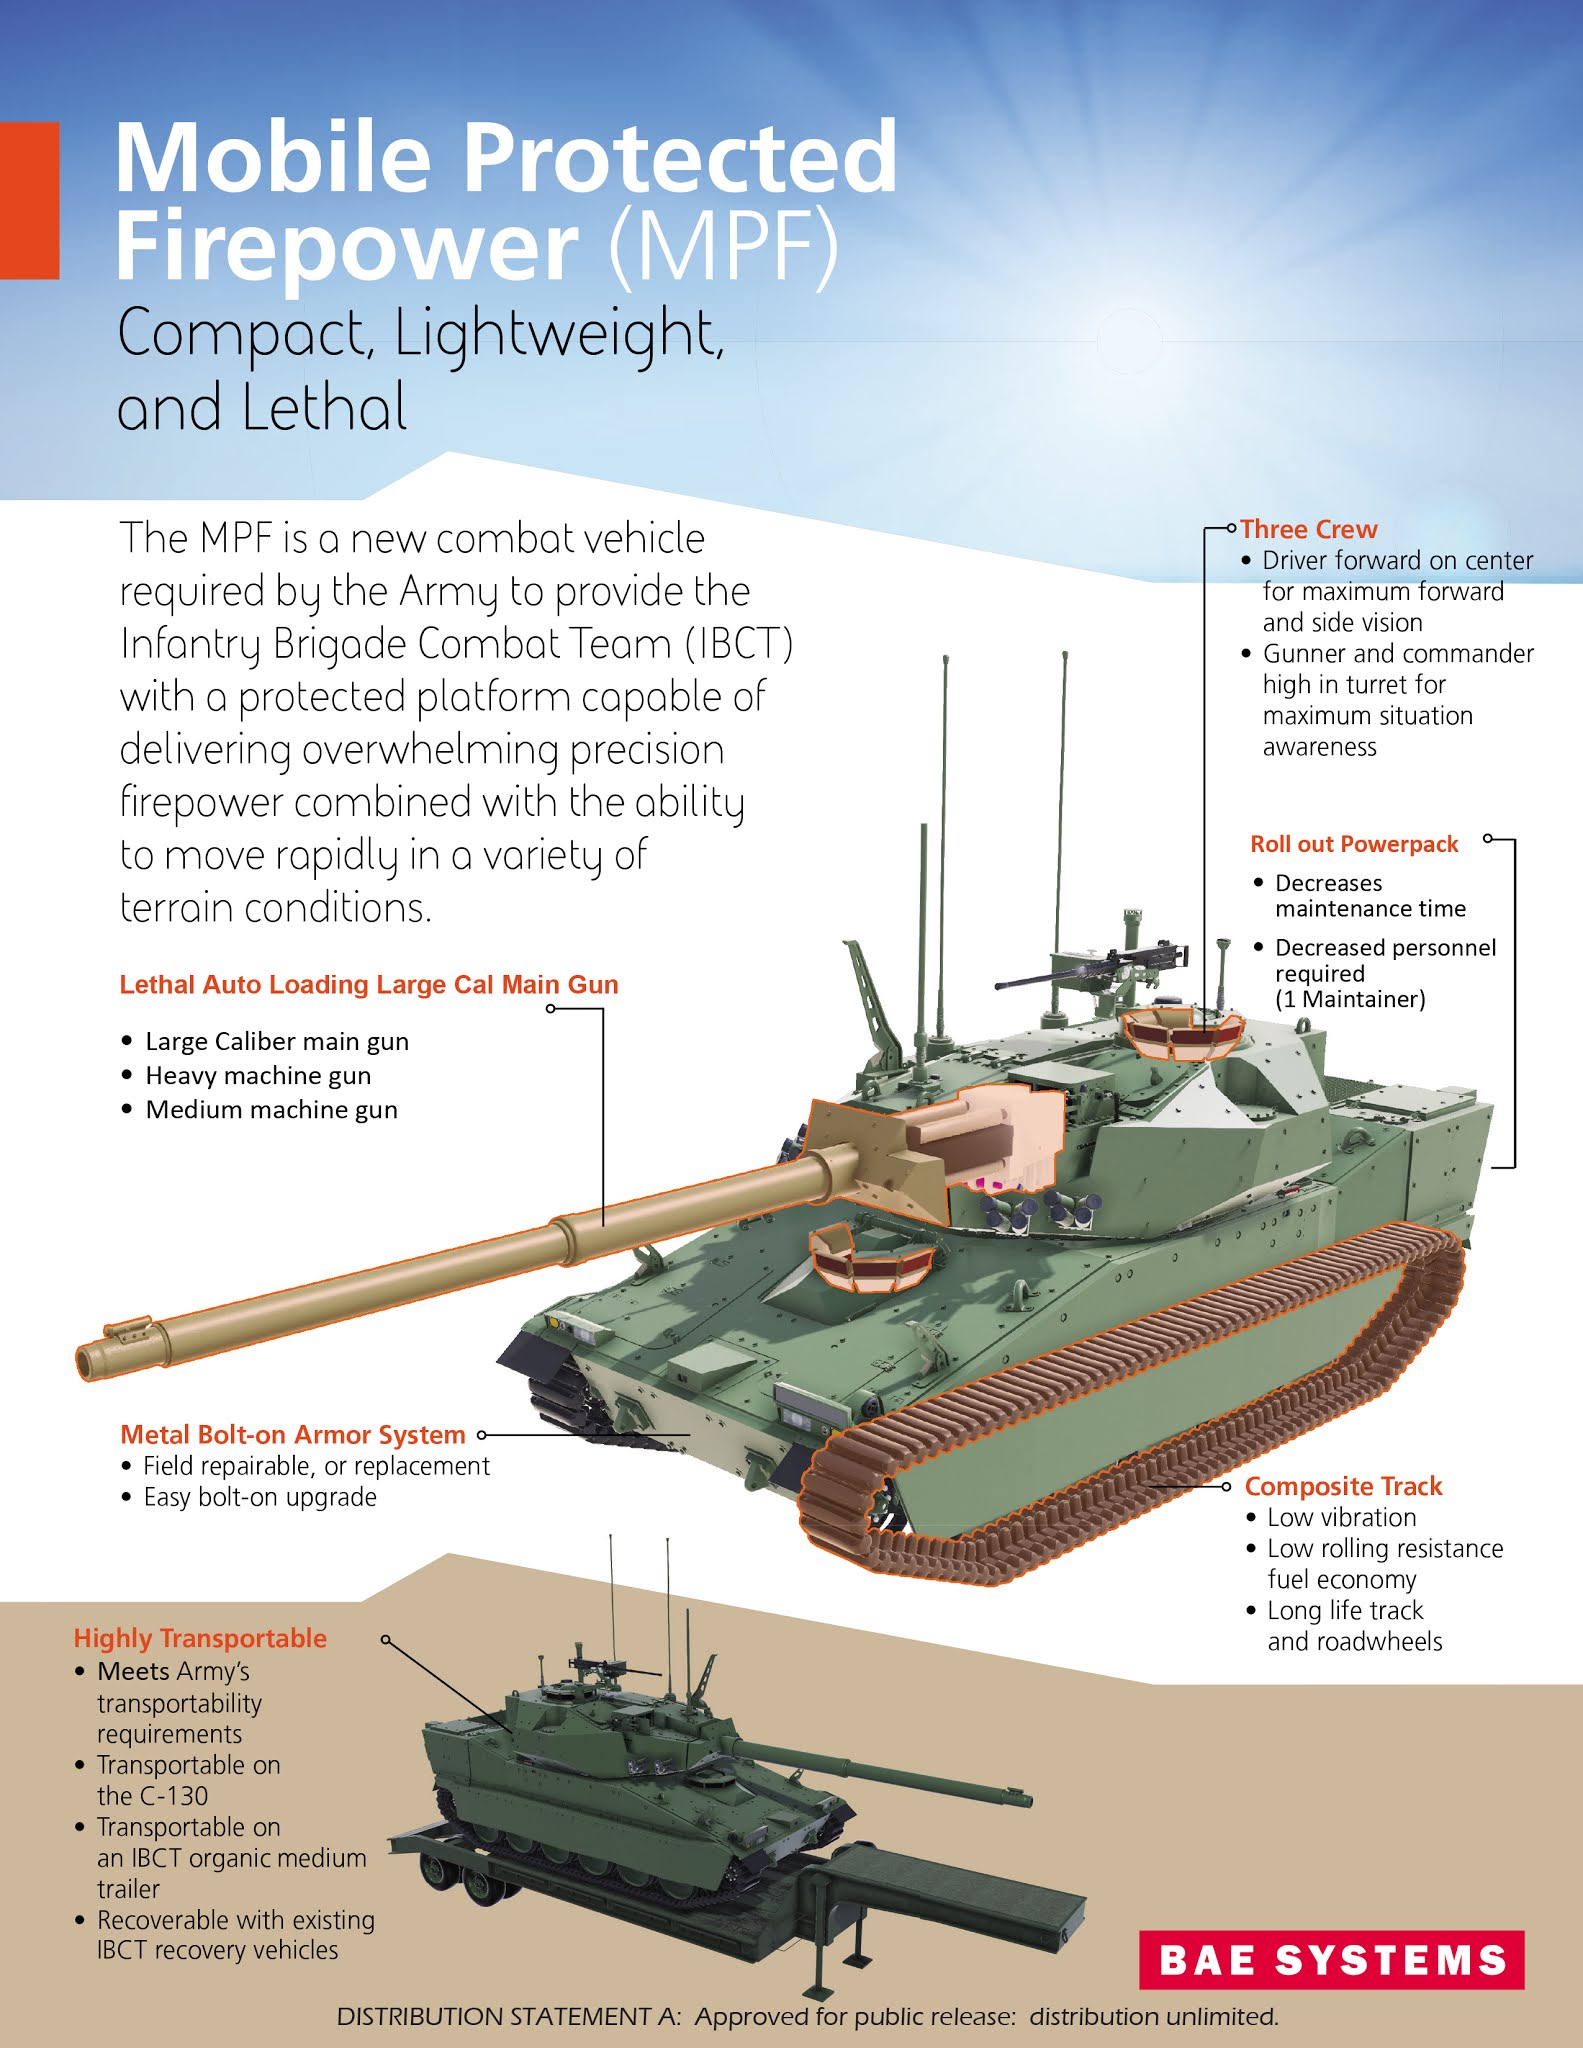 488291575-Baes-infographic-Dist-A-Army-A